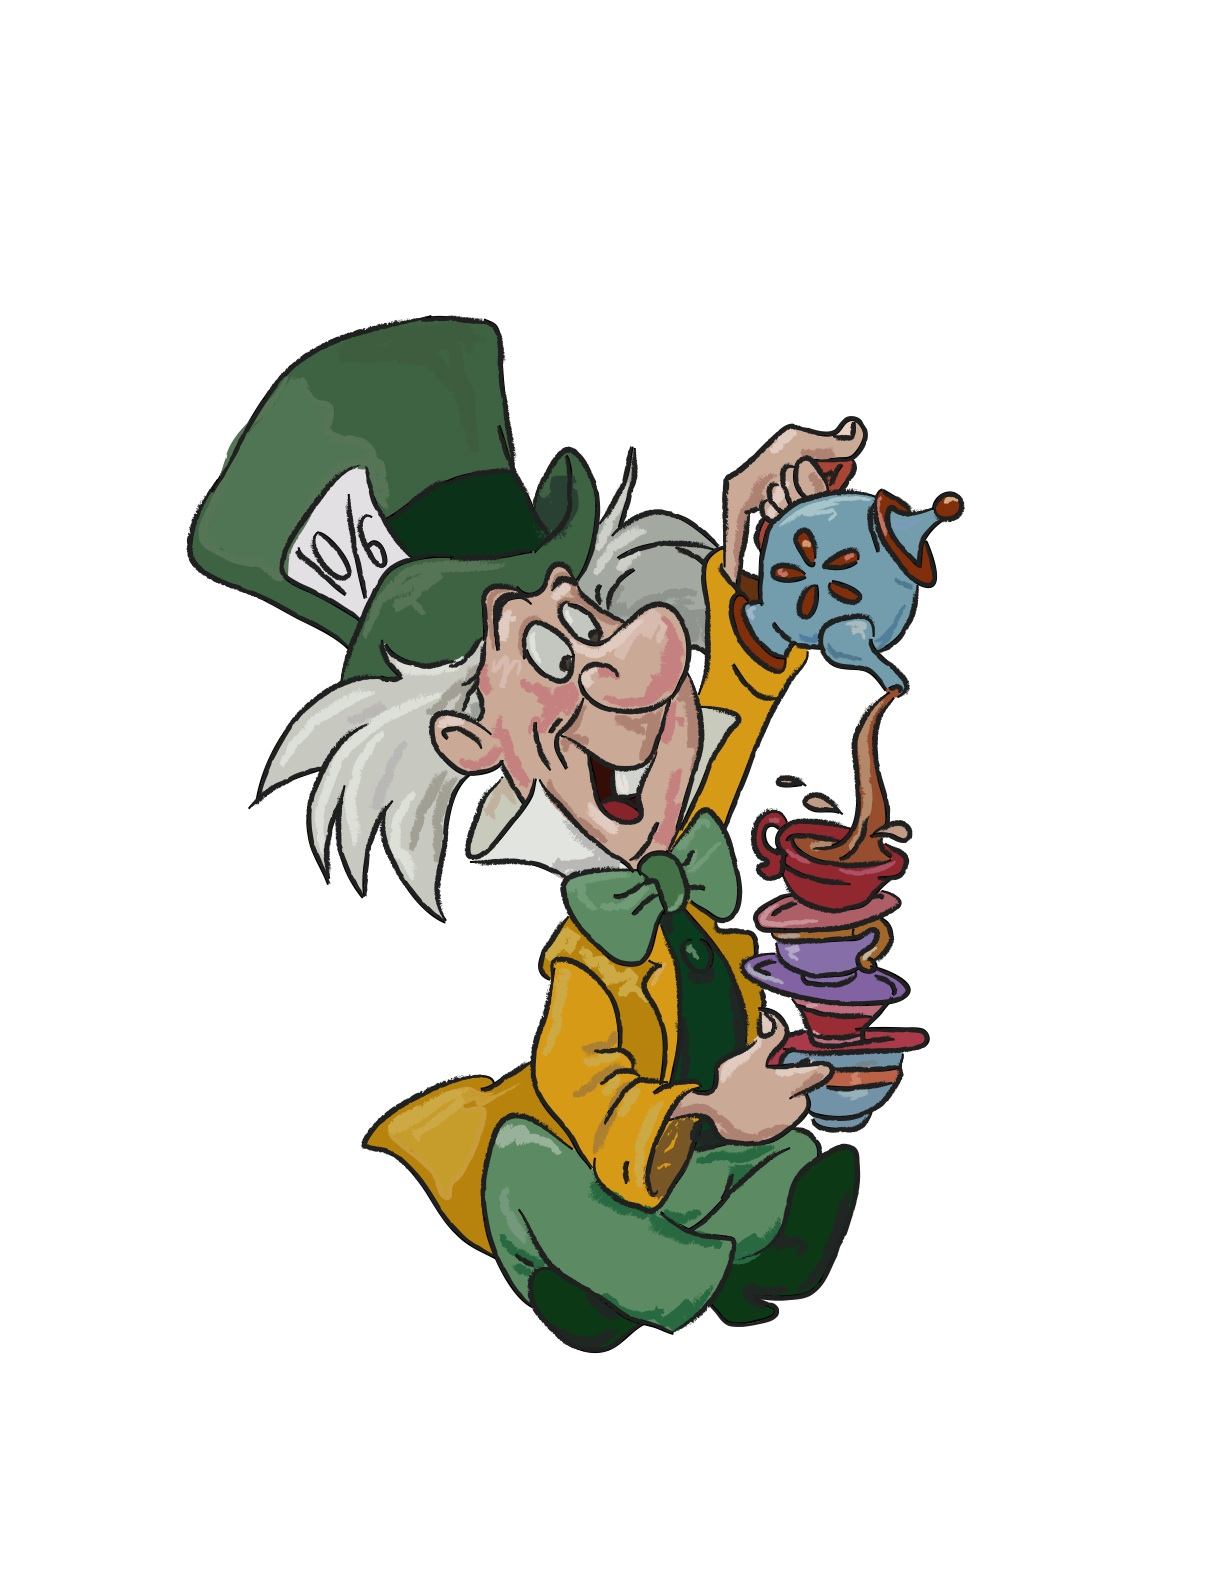 Mad Hatter FROM Alice in Wonderland | Publish with Glogster!